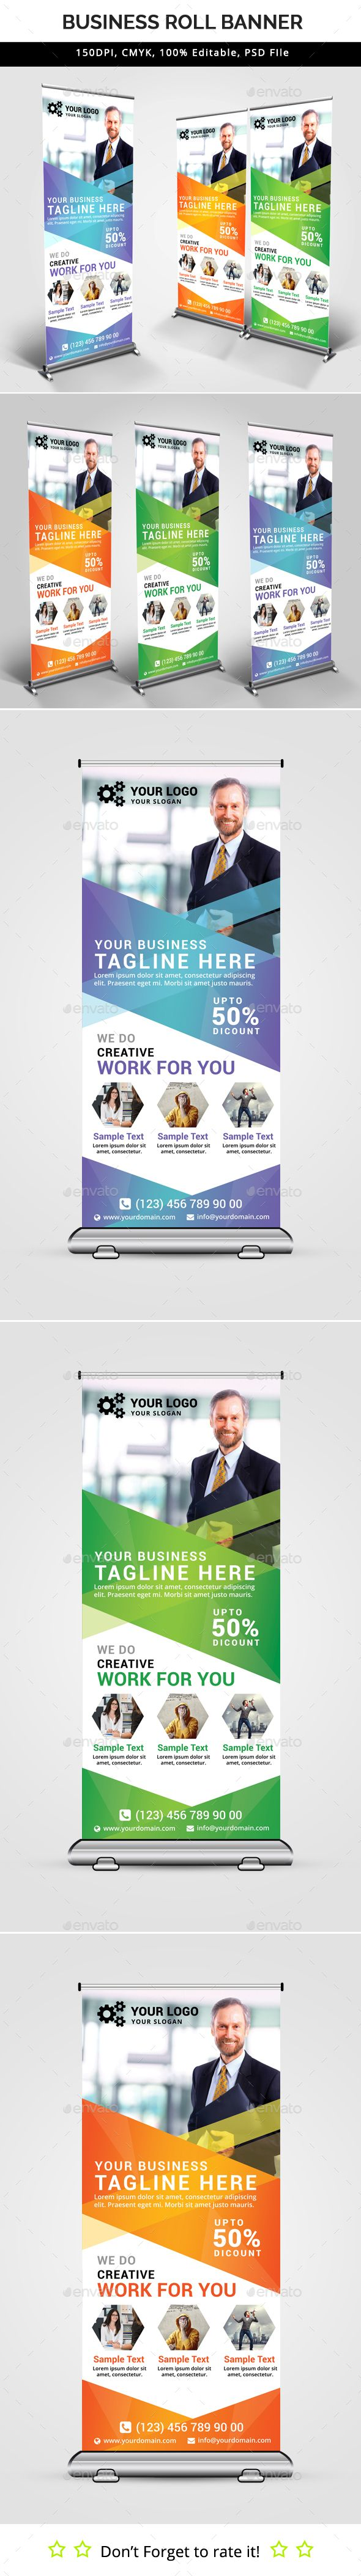 Business Roll Up Banner Template PSD. Download here: http://graphicriver.net/item/business-roll-up-banner-v30/15126048?ref=ksioks